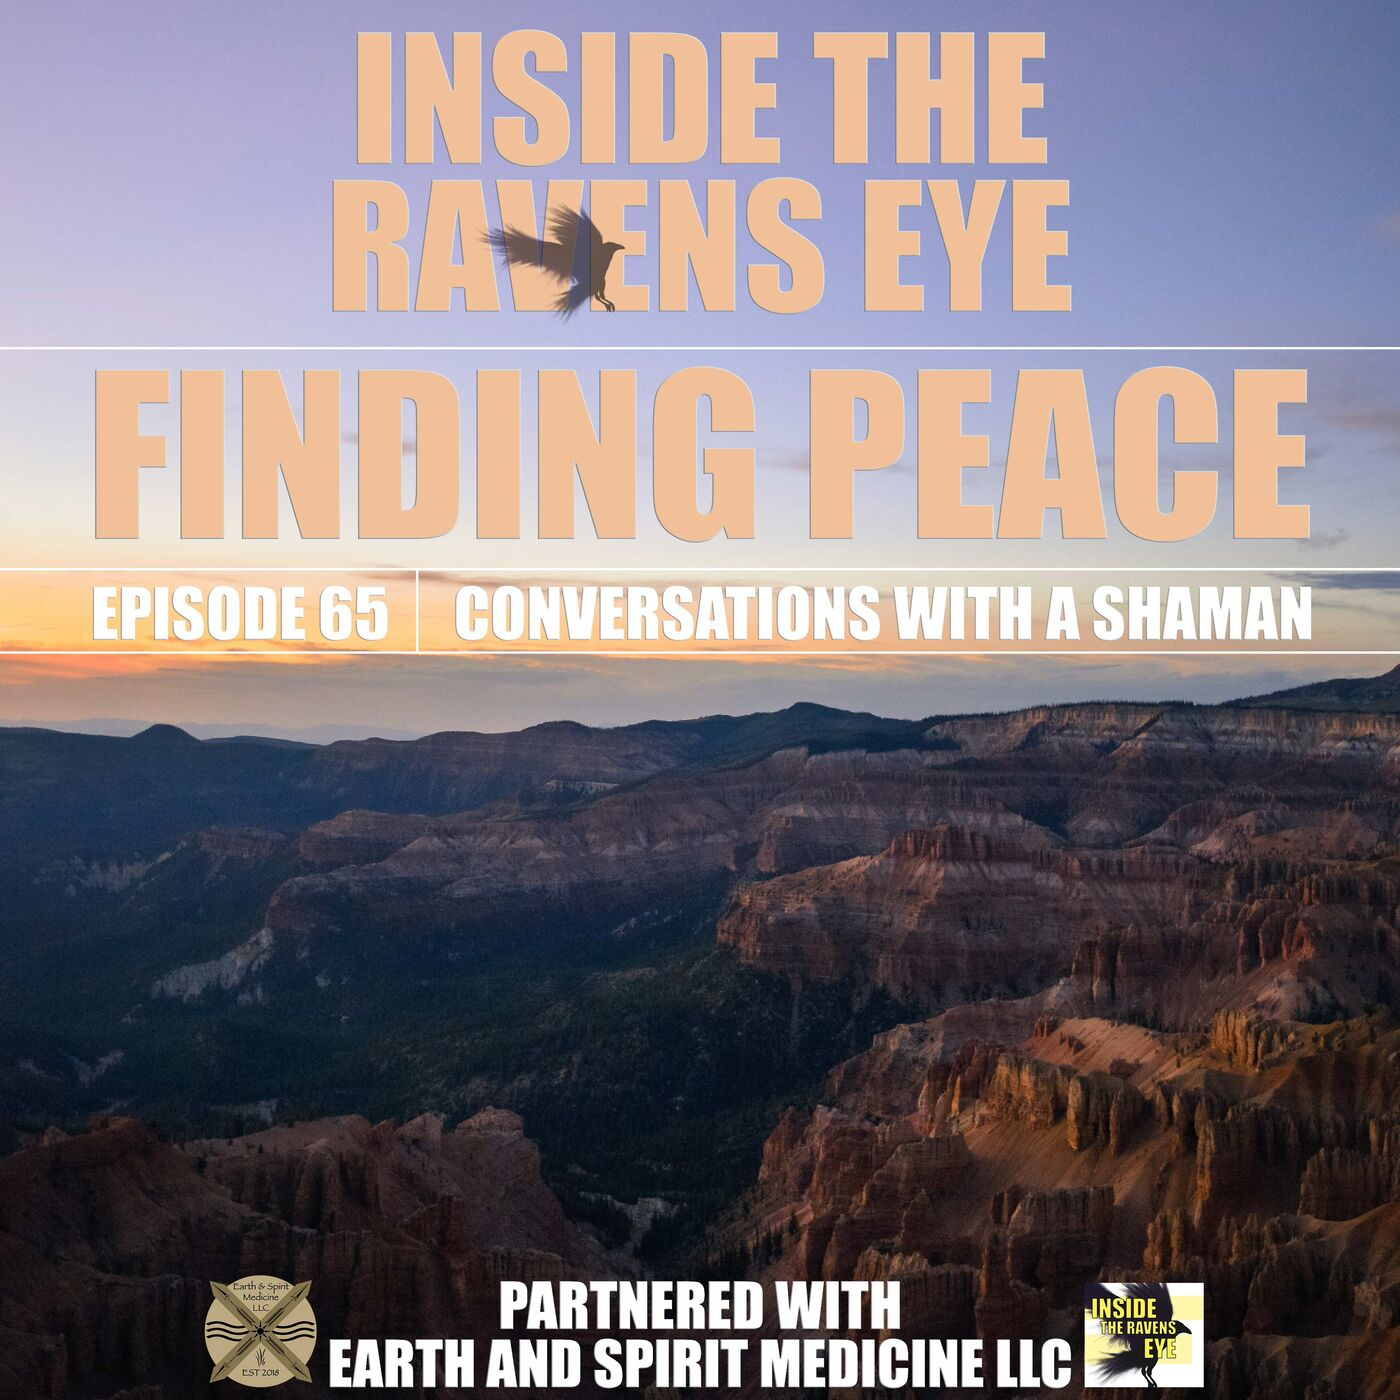 Finding Peace - Episode 65 - Conversations with a Shaman